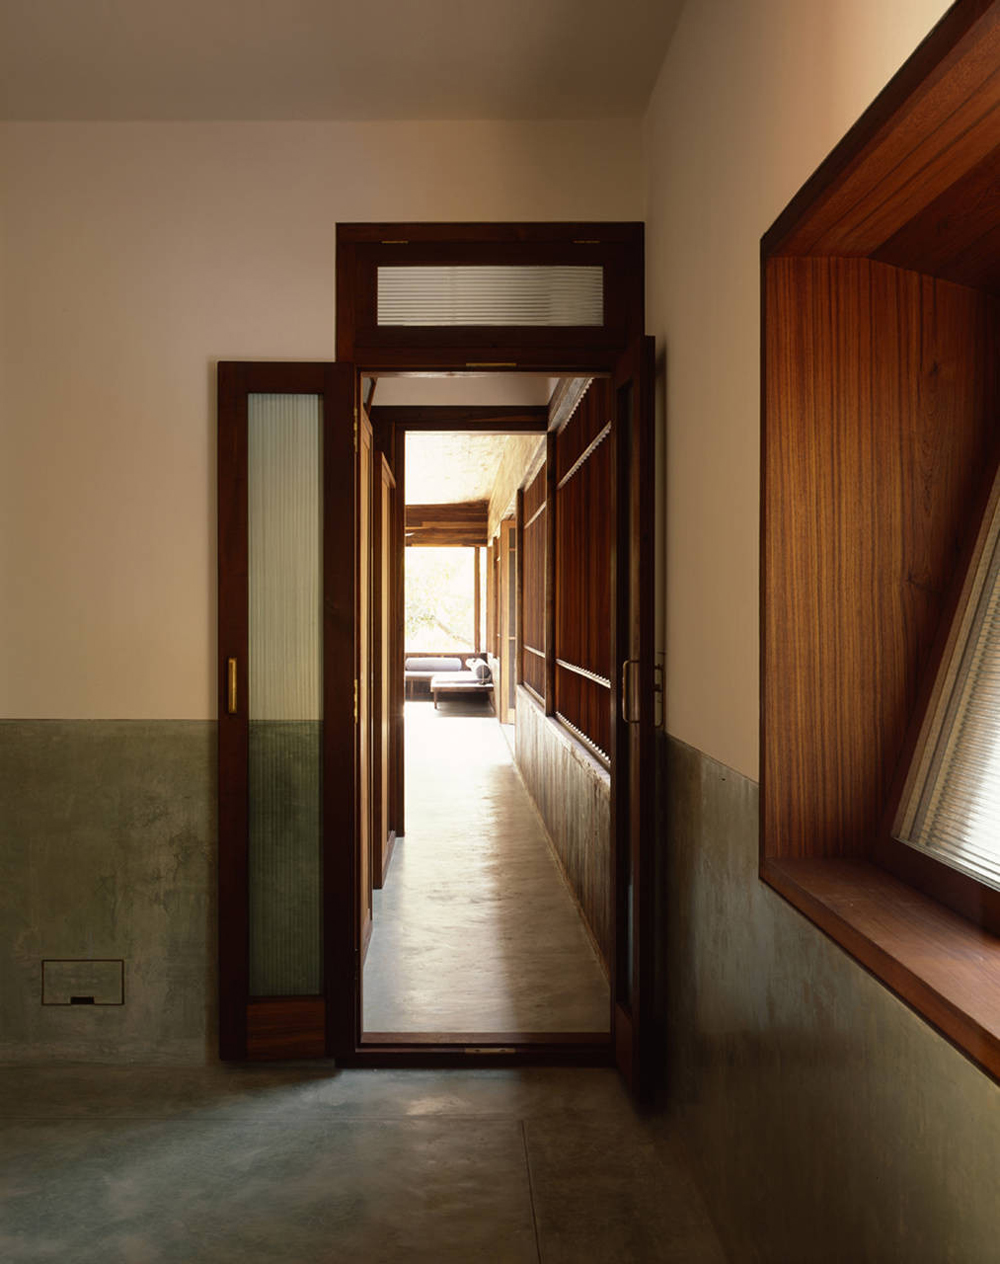 studio mumbai, chondi, india, bijoy jain, interiors, sunday sanctuary, oracle fox